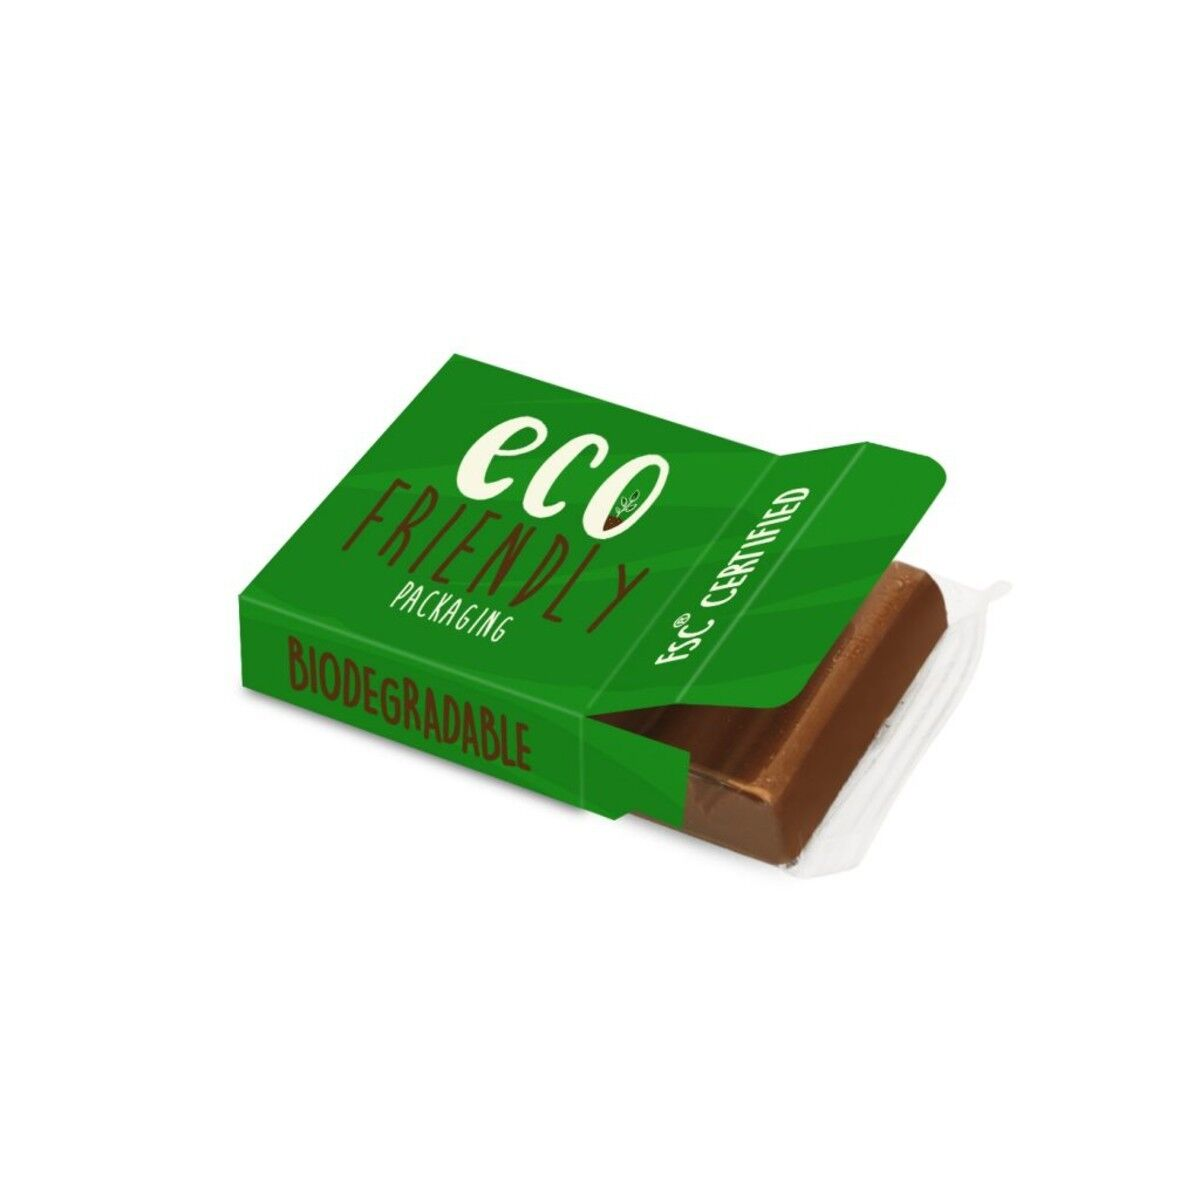 Chocolate Bar in Compostable Packaging 19g